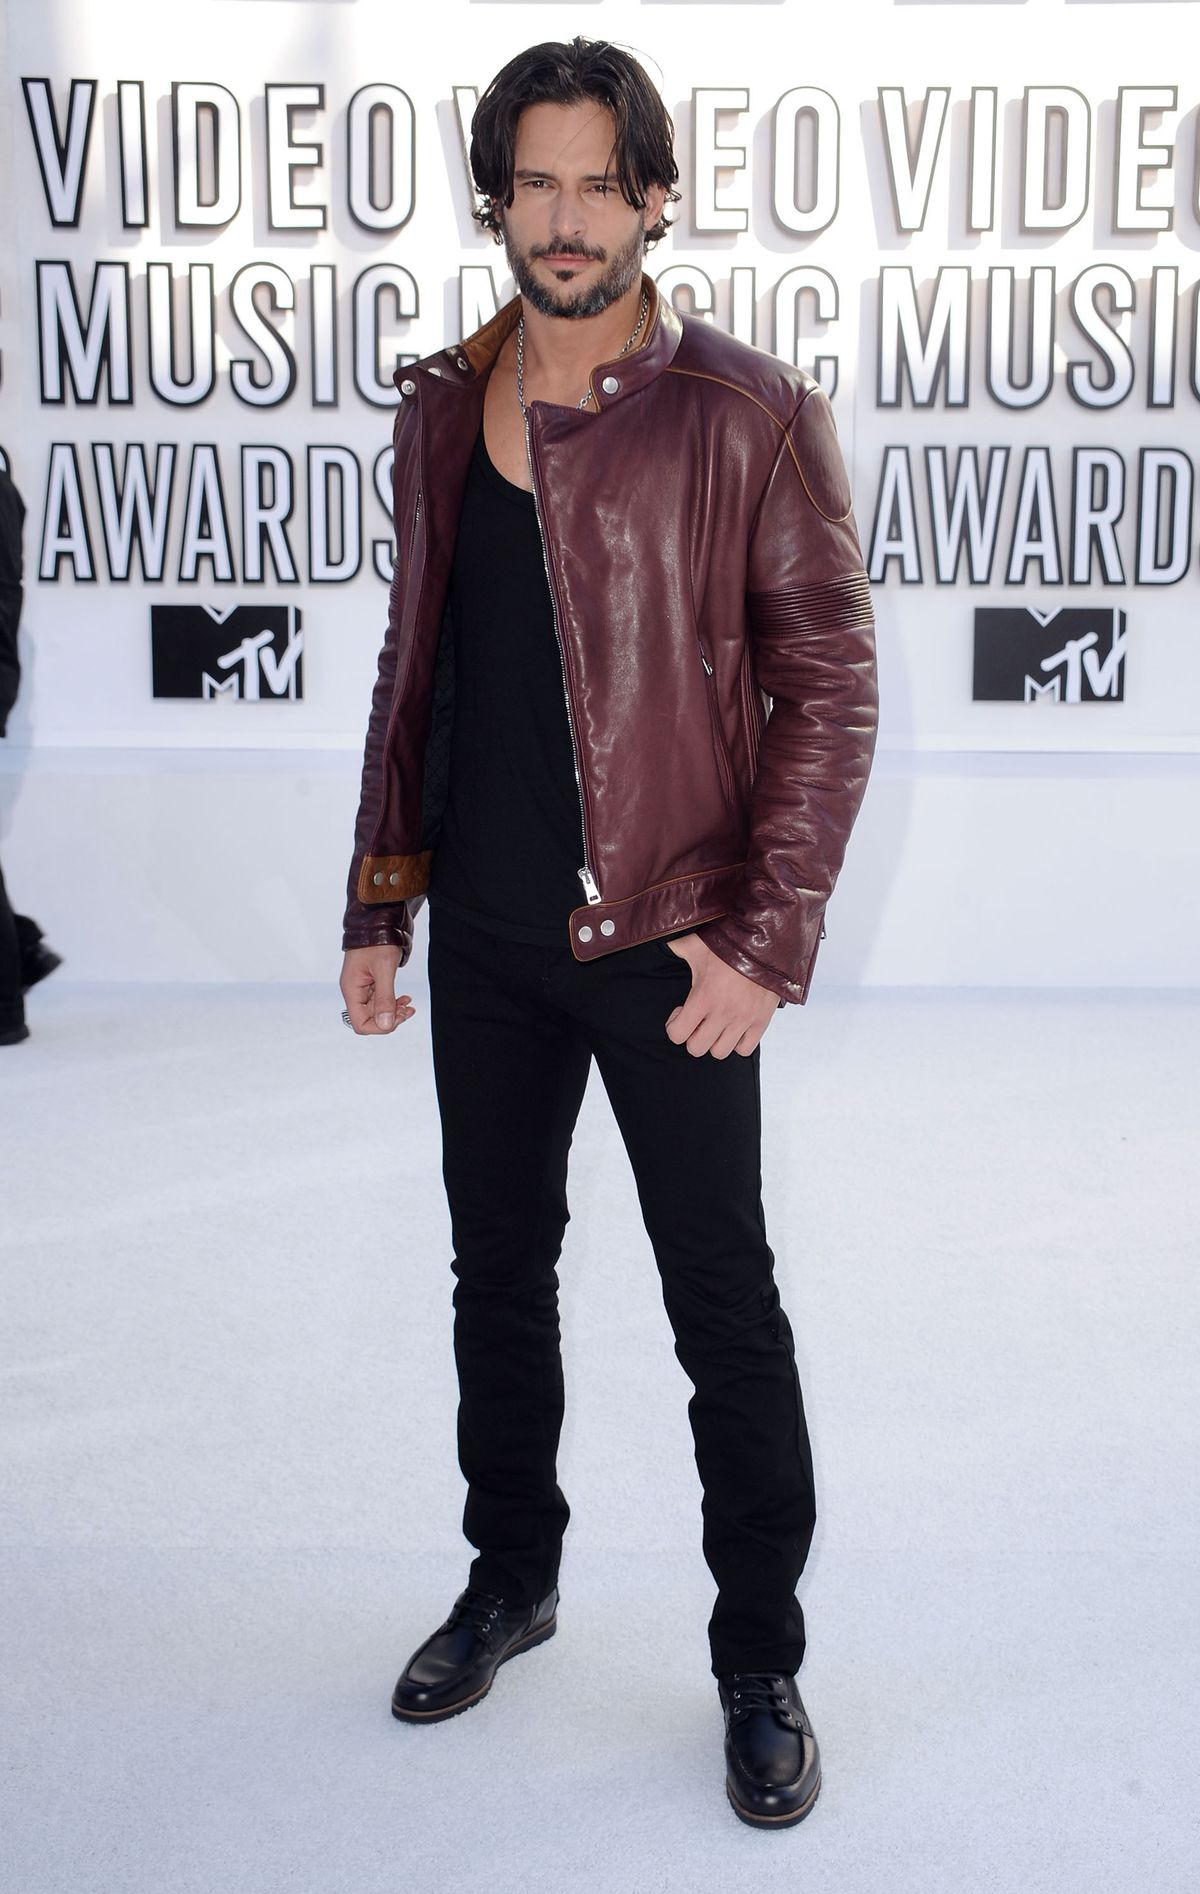 Actor Joe Manganiello arrives at the 2010 MTV Video Music Awards held at Nokia Theatre L.A. Live on September 12, 2010 in Los Angeles, California.